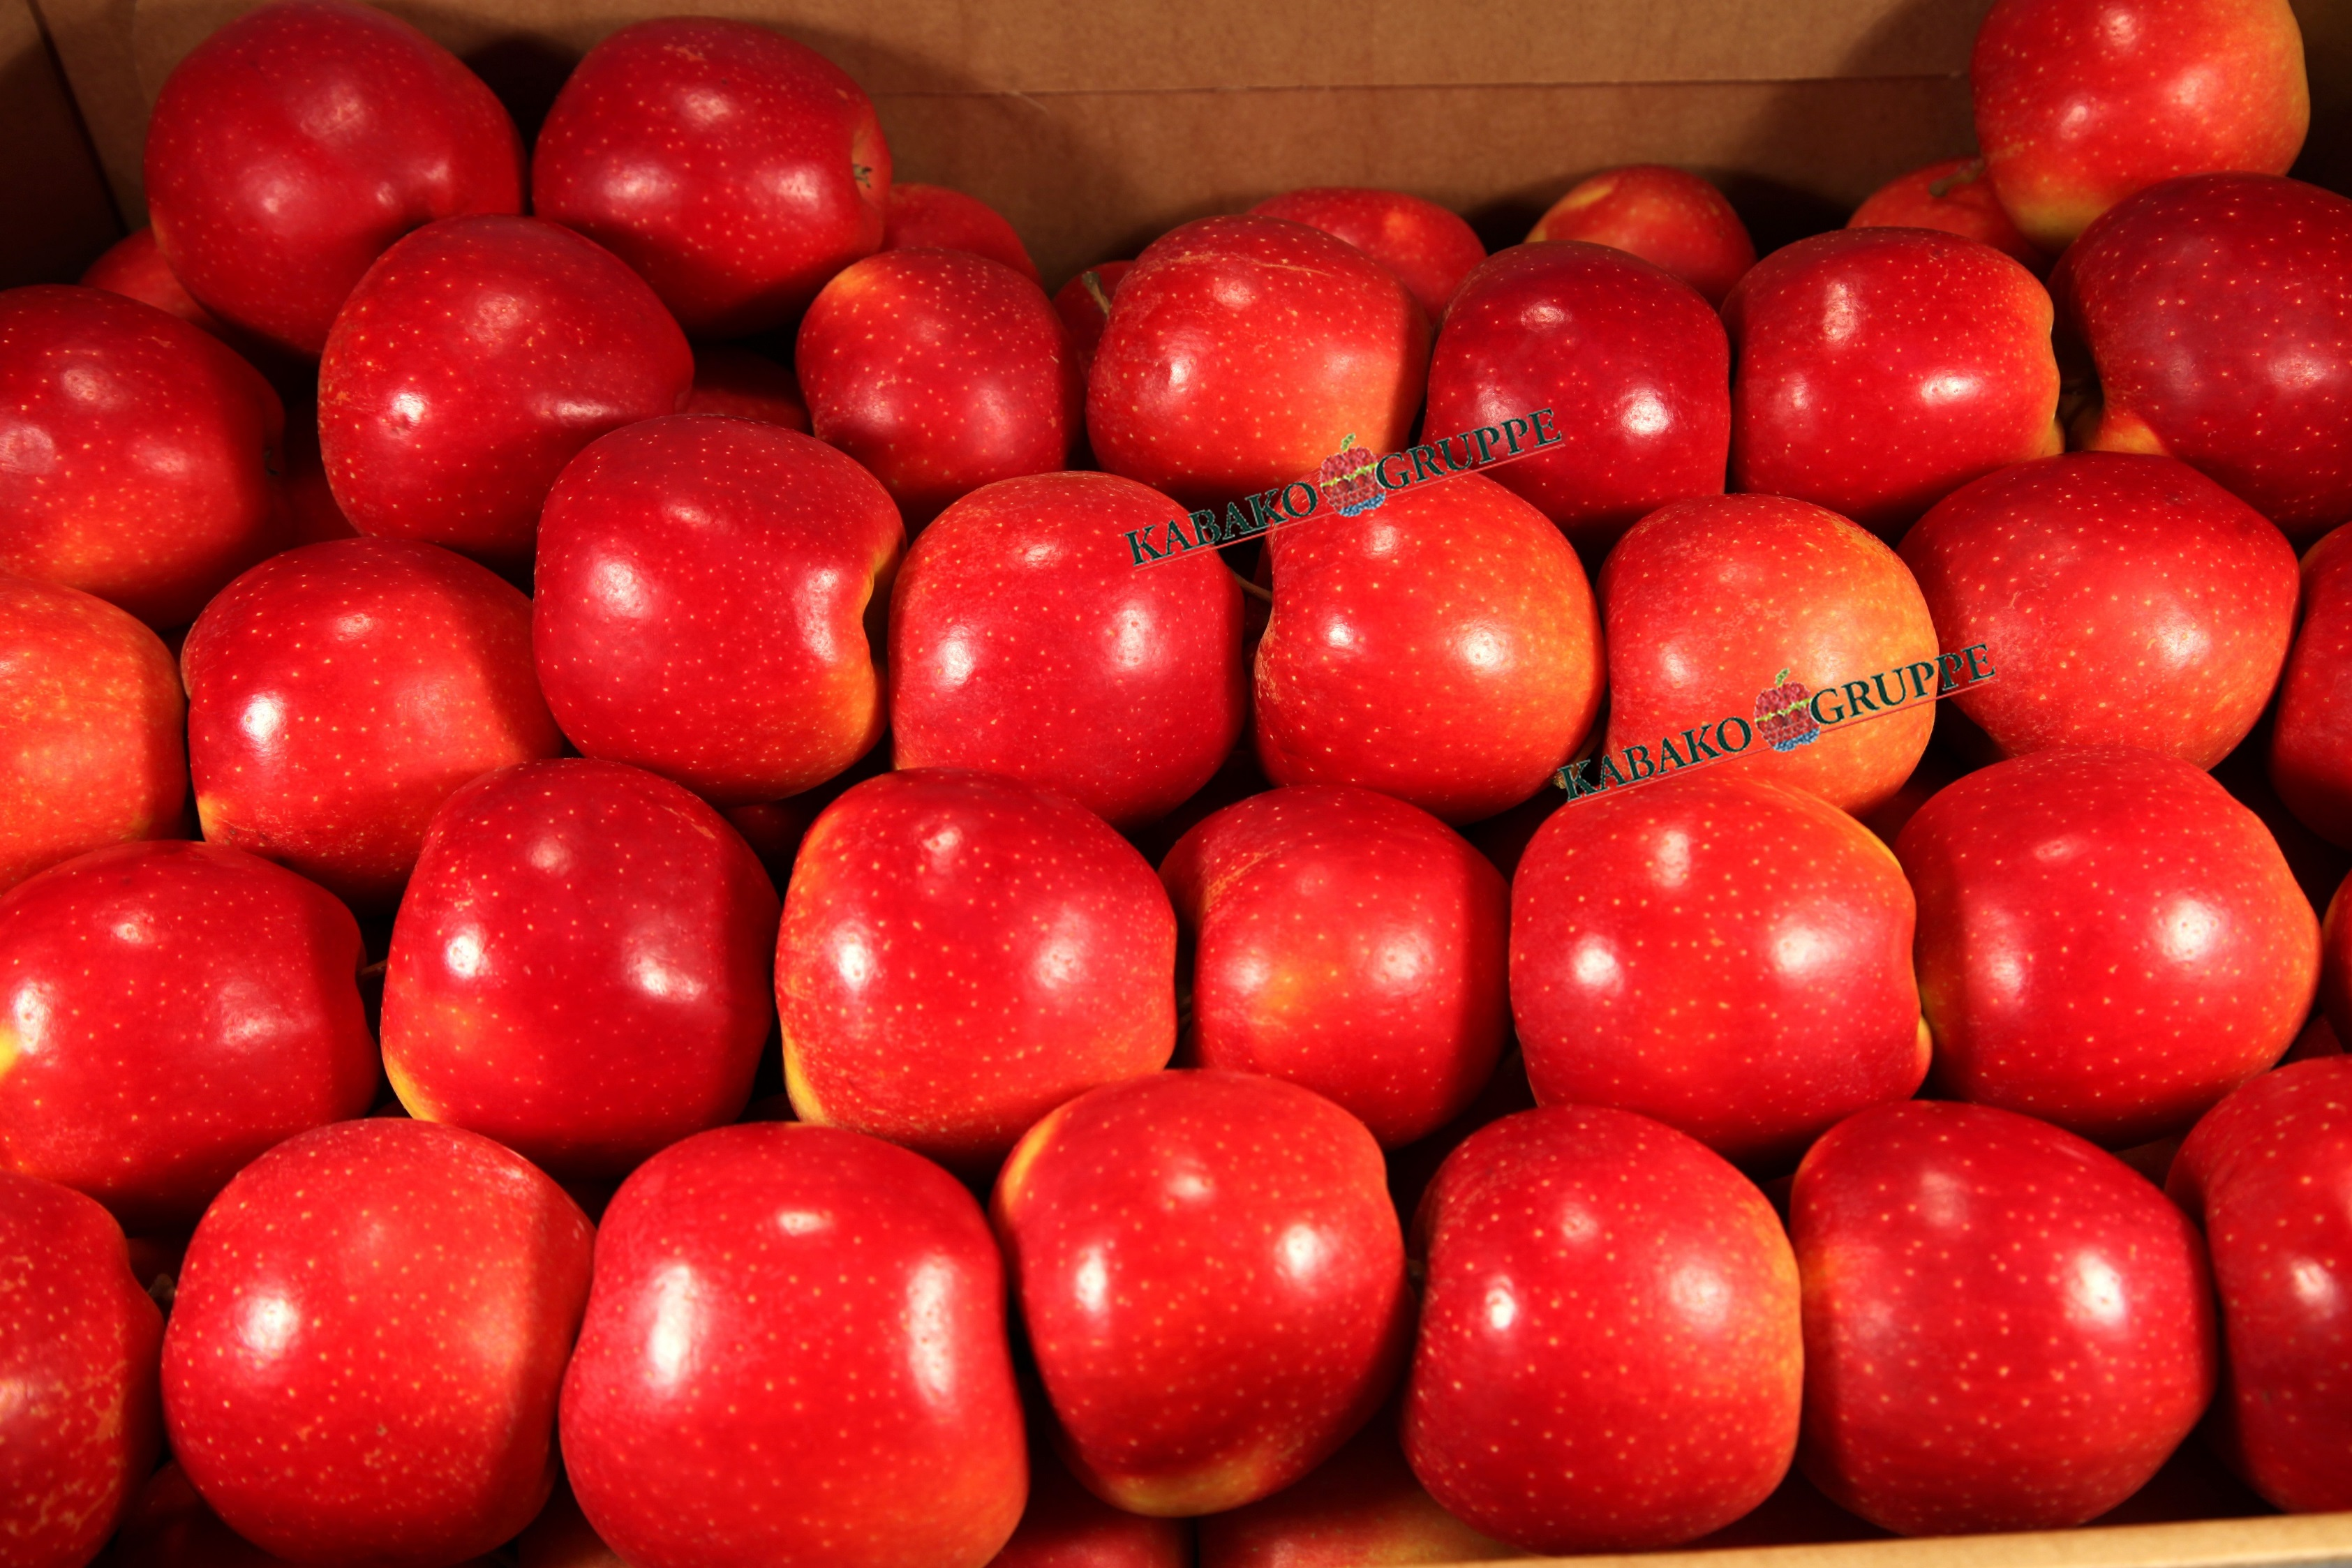 Frozen (IQF) Apples 79